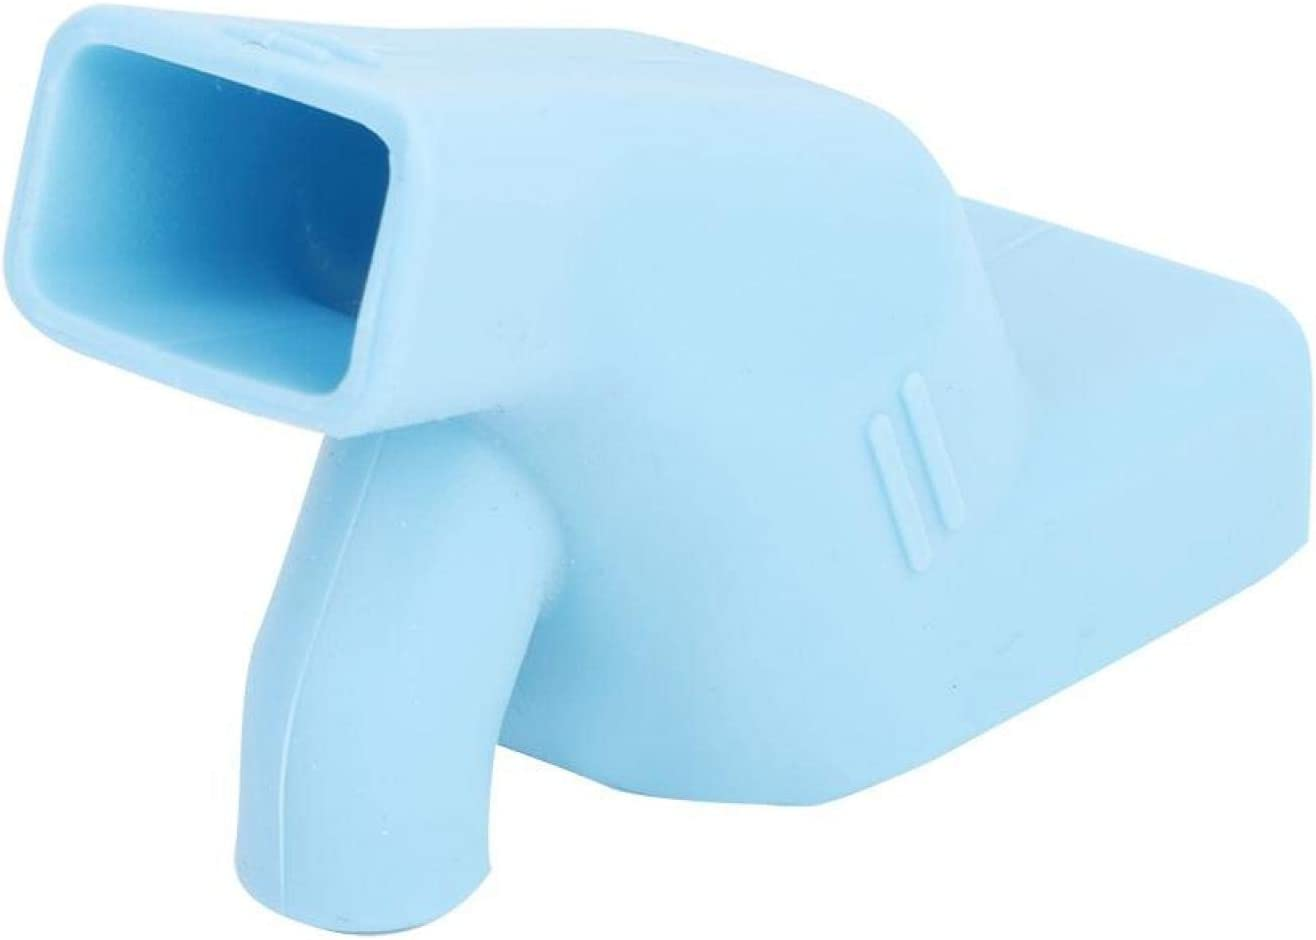 Faucet Extender, Silicone Sink Spout Extender Bath Spout Cover Children Toddler Hand Washing Water Tap Extender for Bathroom Kitchen(Blue)